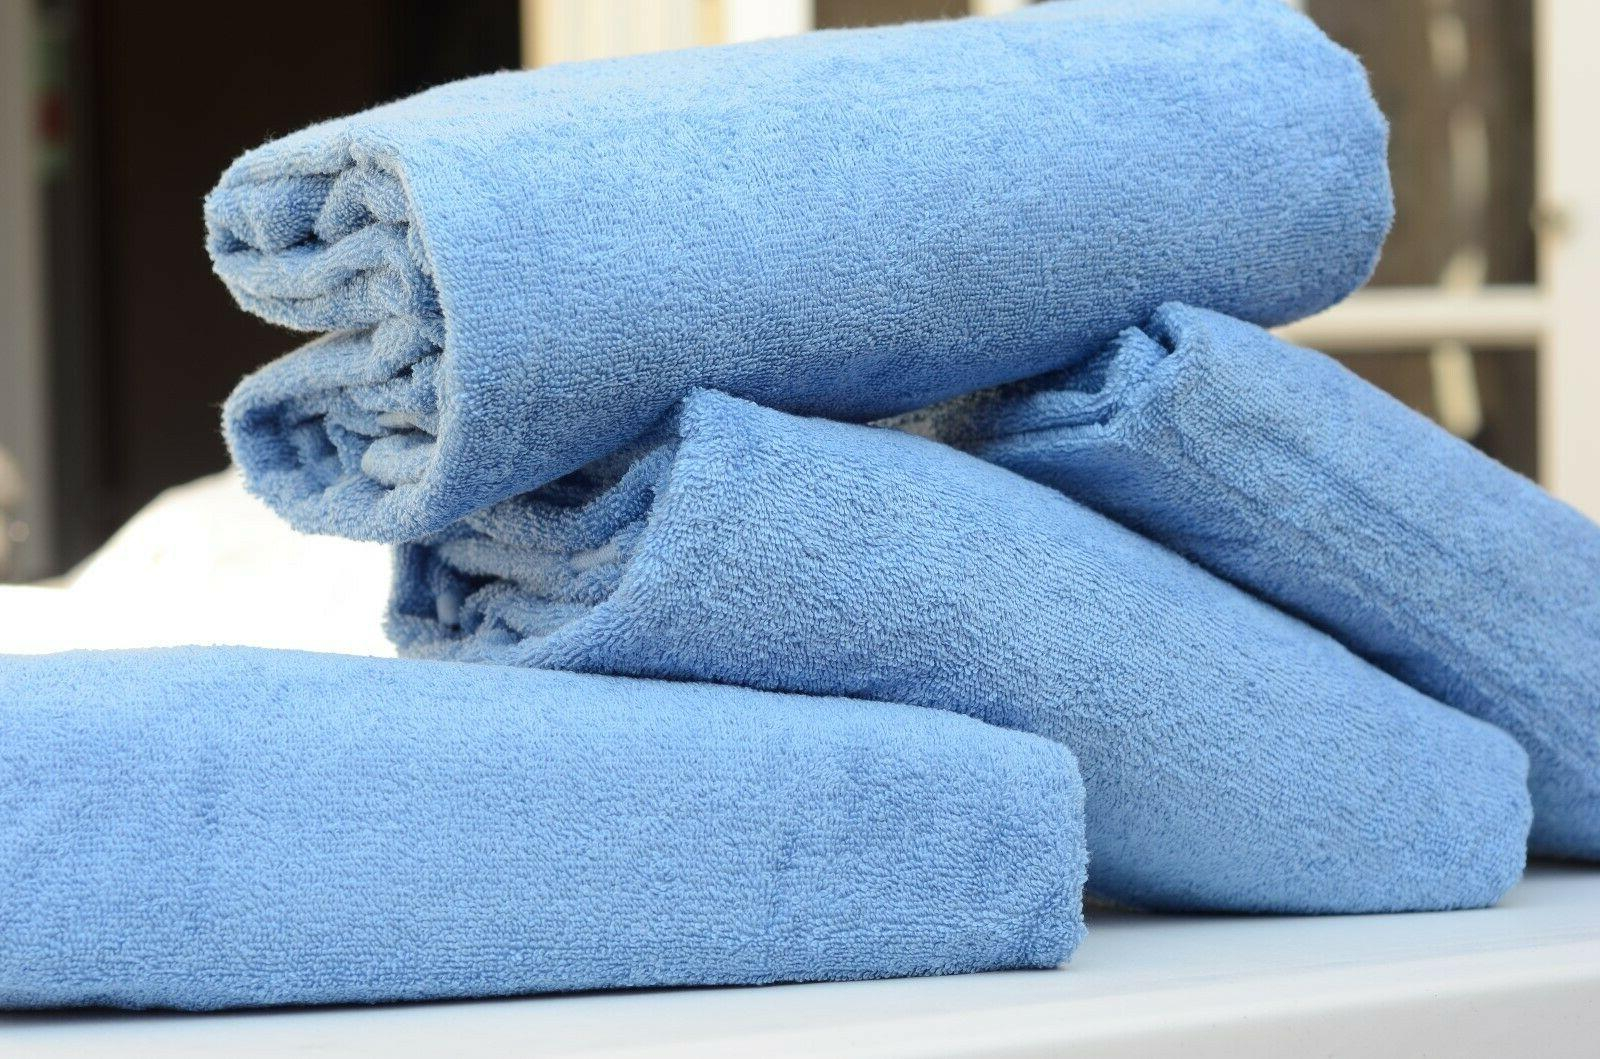 4-PACK 100% COTTON BEACH TOWELS 30x60 HOTEL QUALITY!